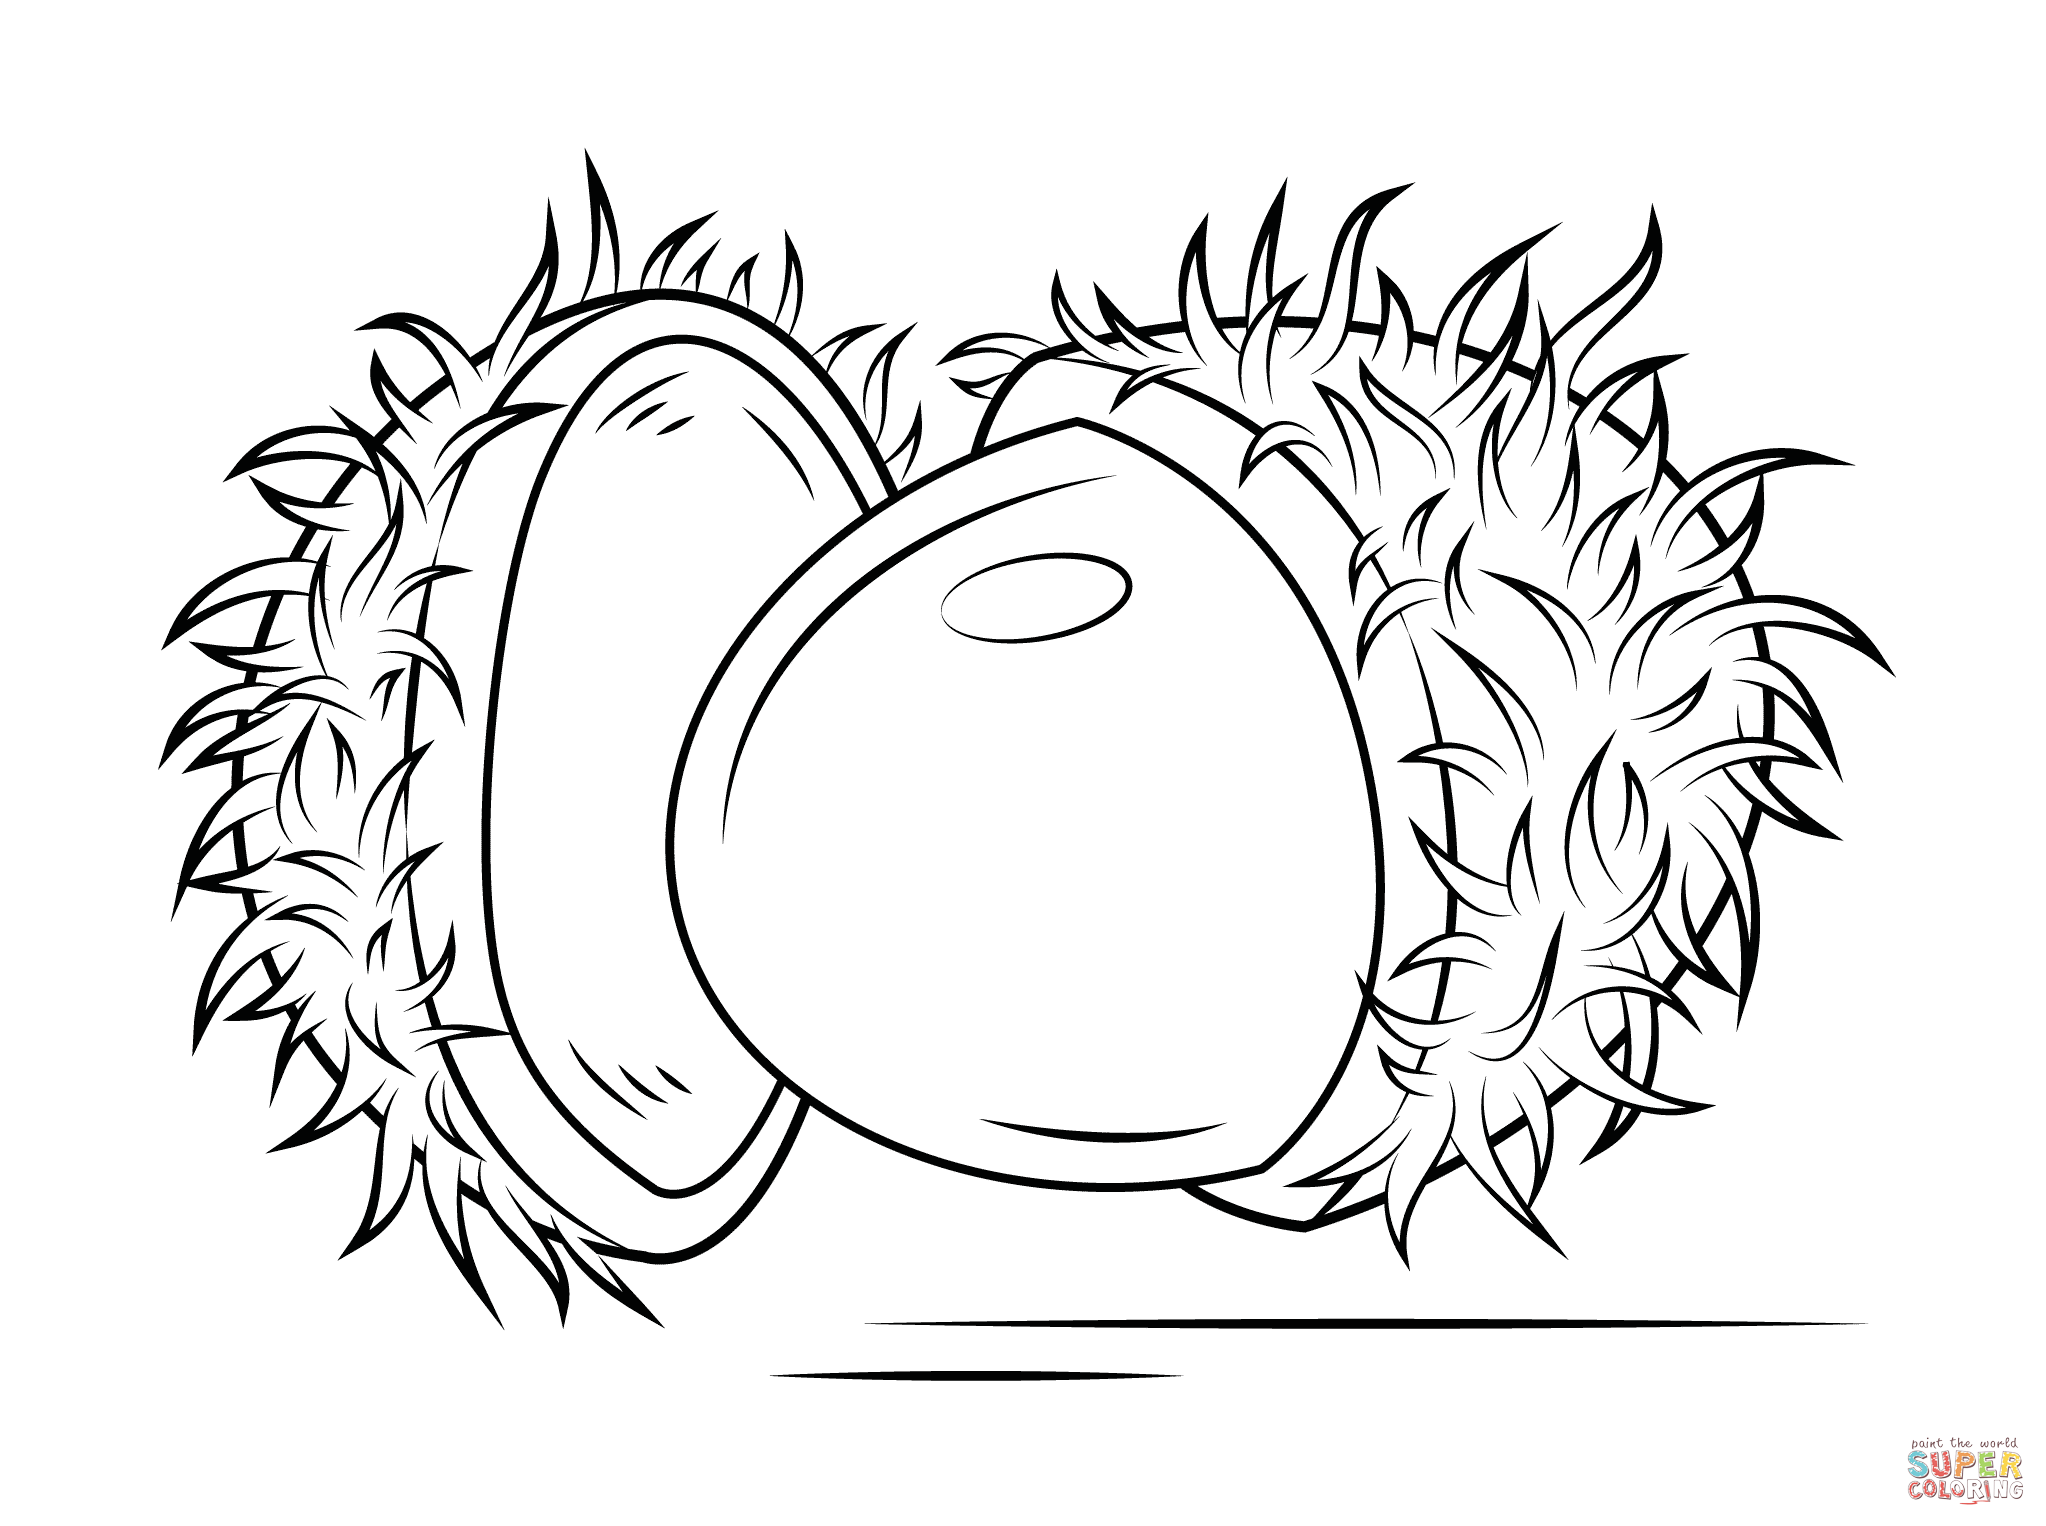 2046x1526 Open Rambutan Coloring Page Free Printable Coloring Pages